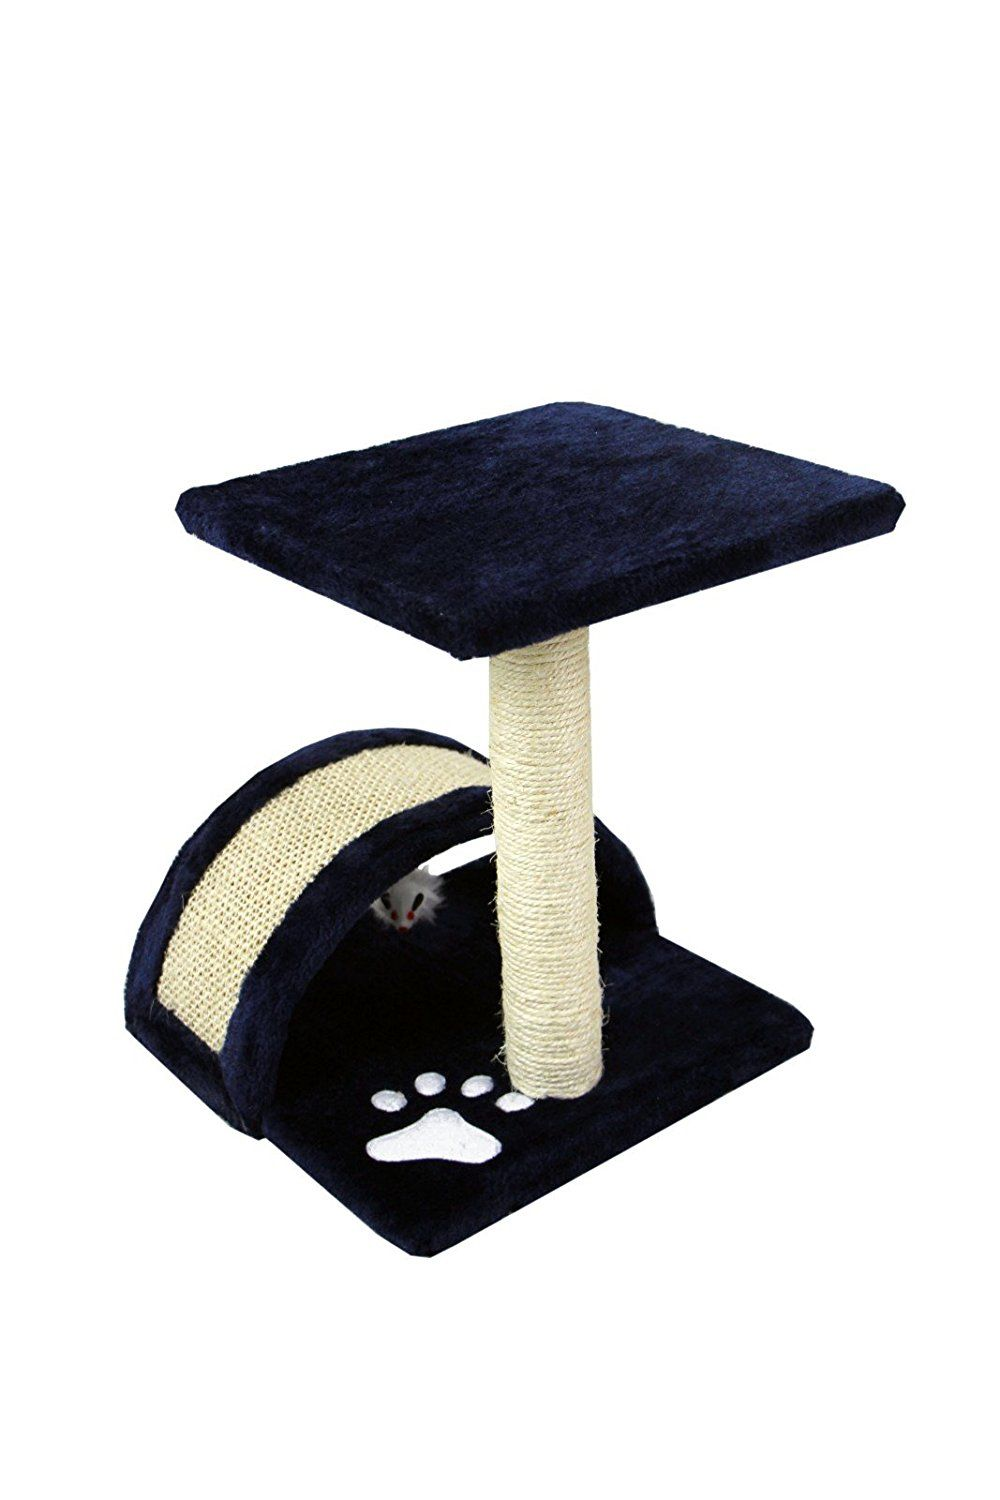 15 Hiding Cat Tree Small Sisal Scratching Post Furniture Playhouse Pet Bed Kitten Toy Cat Tower Condo For Kittens Navy Blu Kitten Toys Small Cat Tree Pet Bed